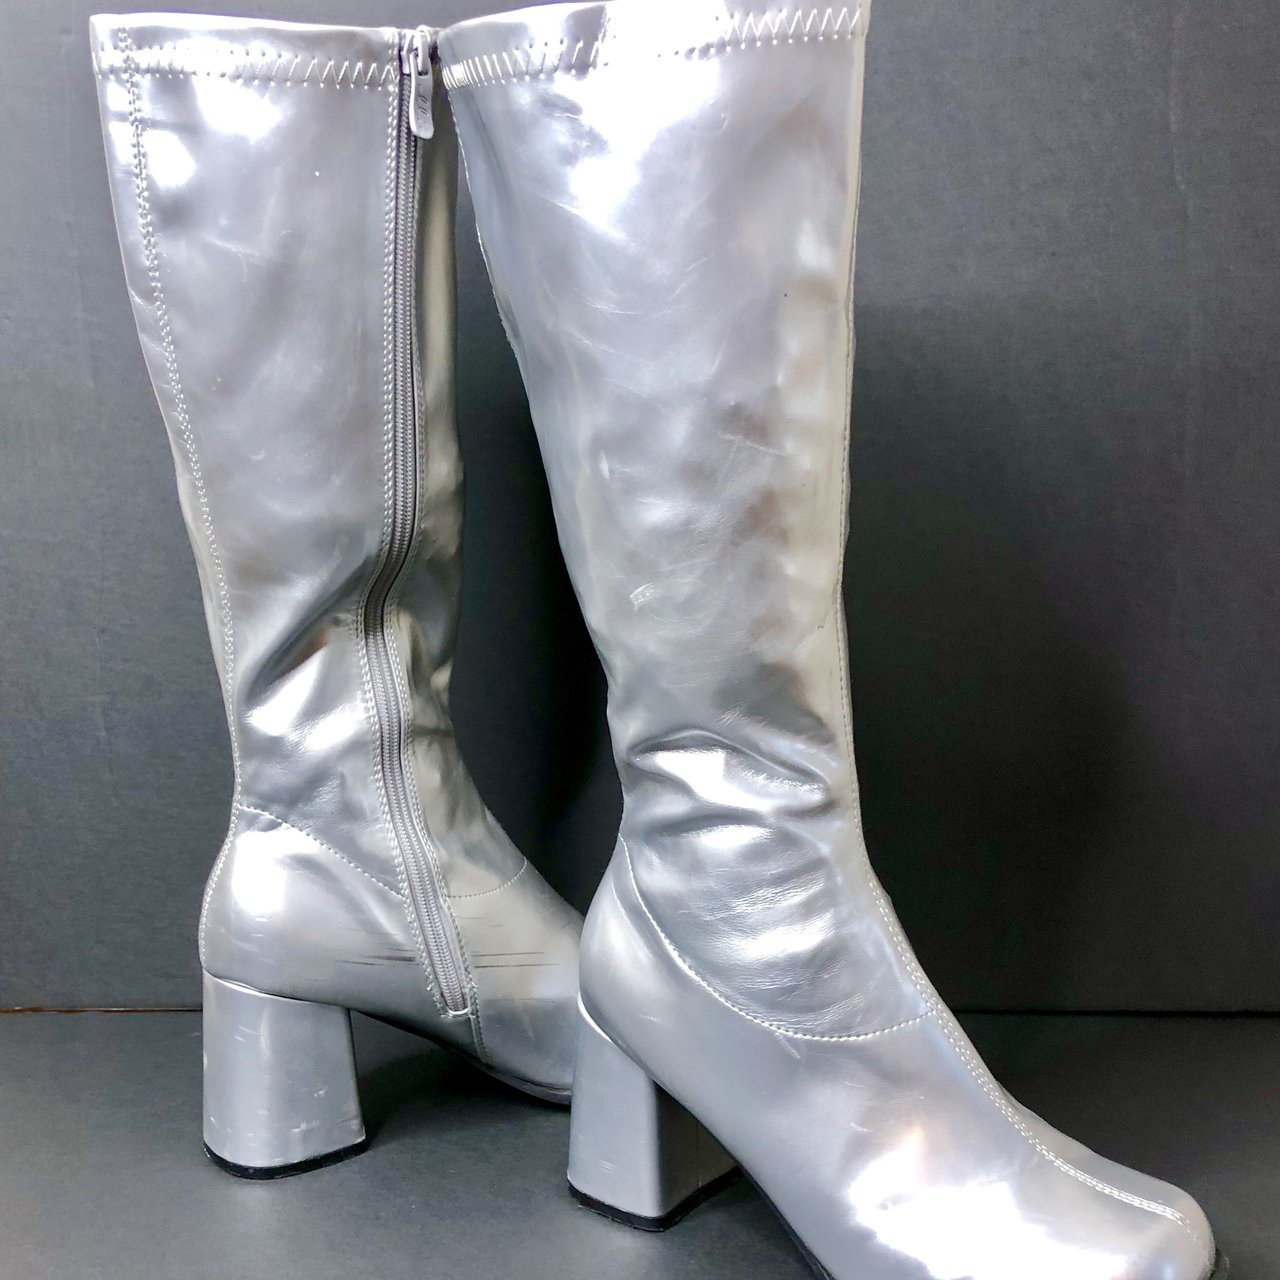 a56cf7c61 @sleazyspice. 9 months ago. Temple Hills, United States. Silver leather  knee high platform boots ...